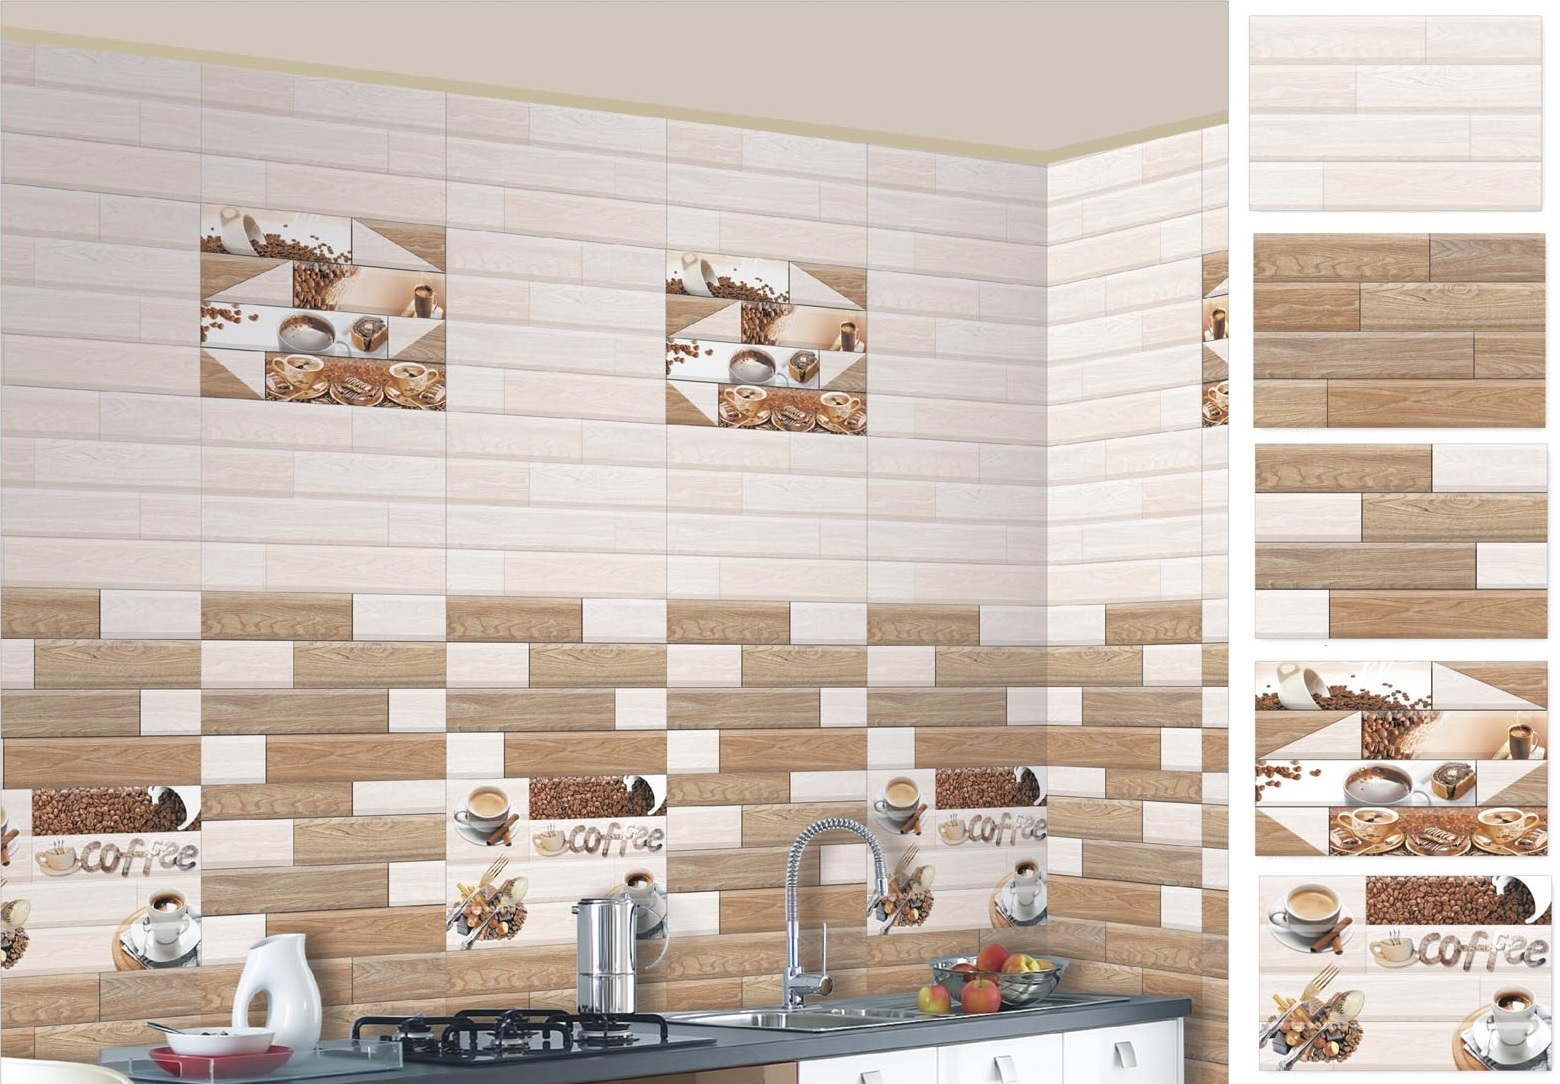 12 X 18 Kitchen Wall Tiles